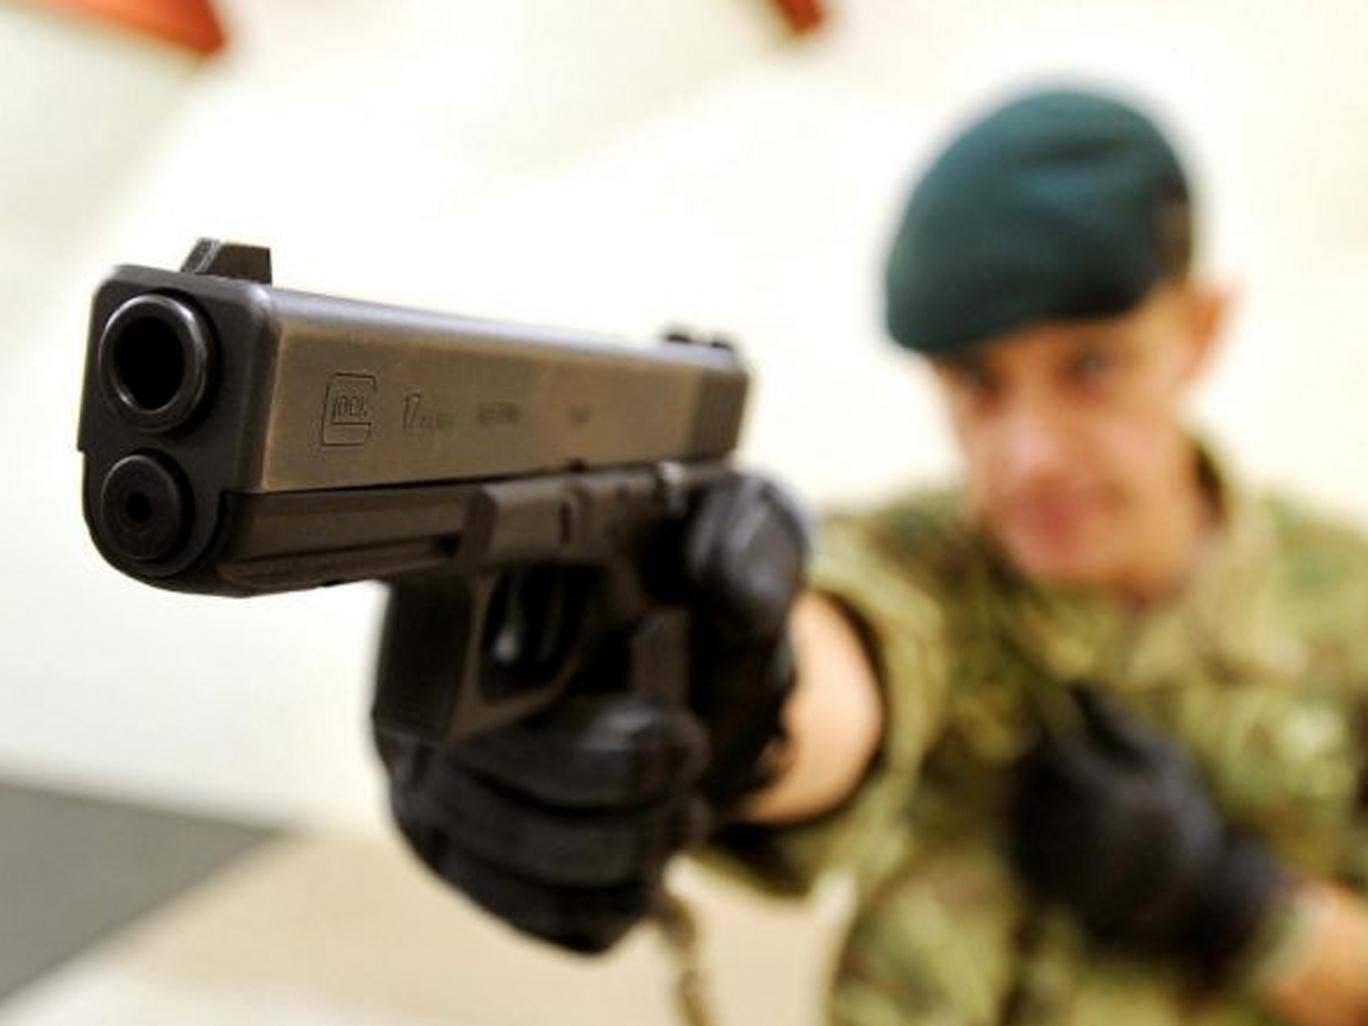 Royal Marine Sergeant Steve Lord tests a Glock 17 9mm pistol, on an indoor shooting range at Woolwich Barracks, south-east London, as personnel from all three services are to start using the new Glock pistols after a contract was awarded to replace the cu